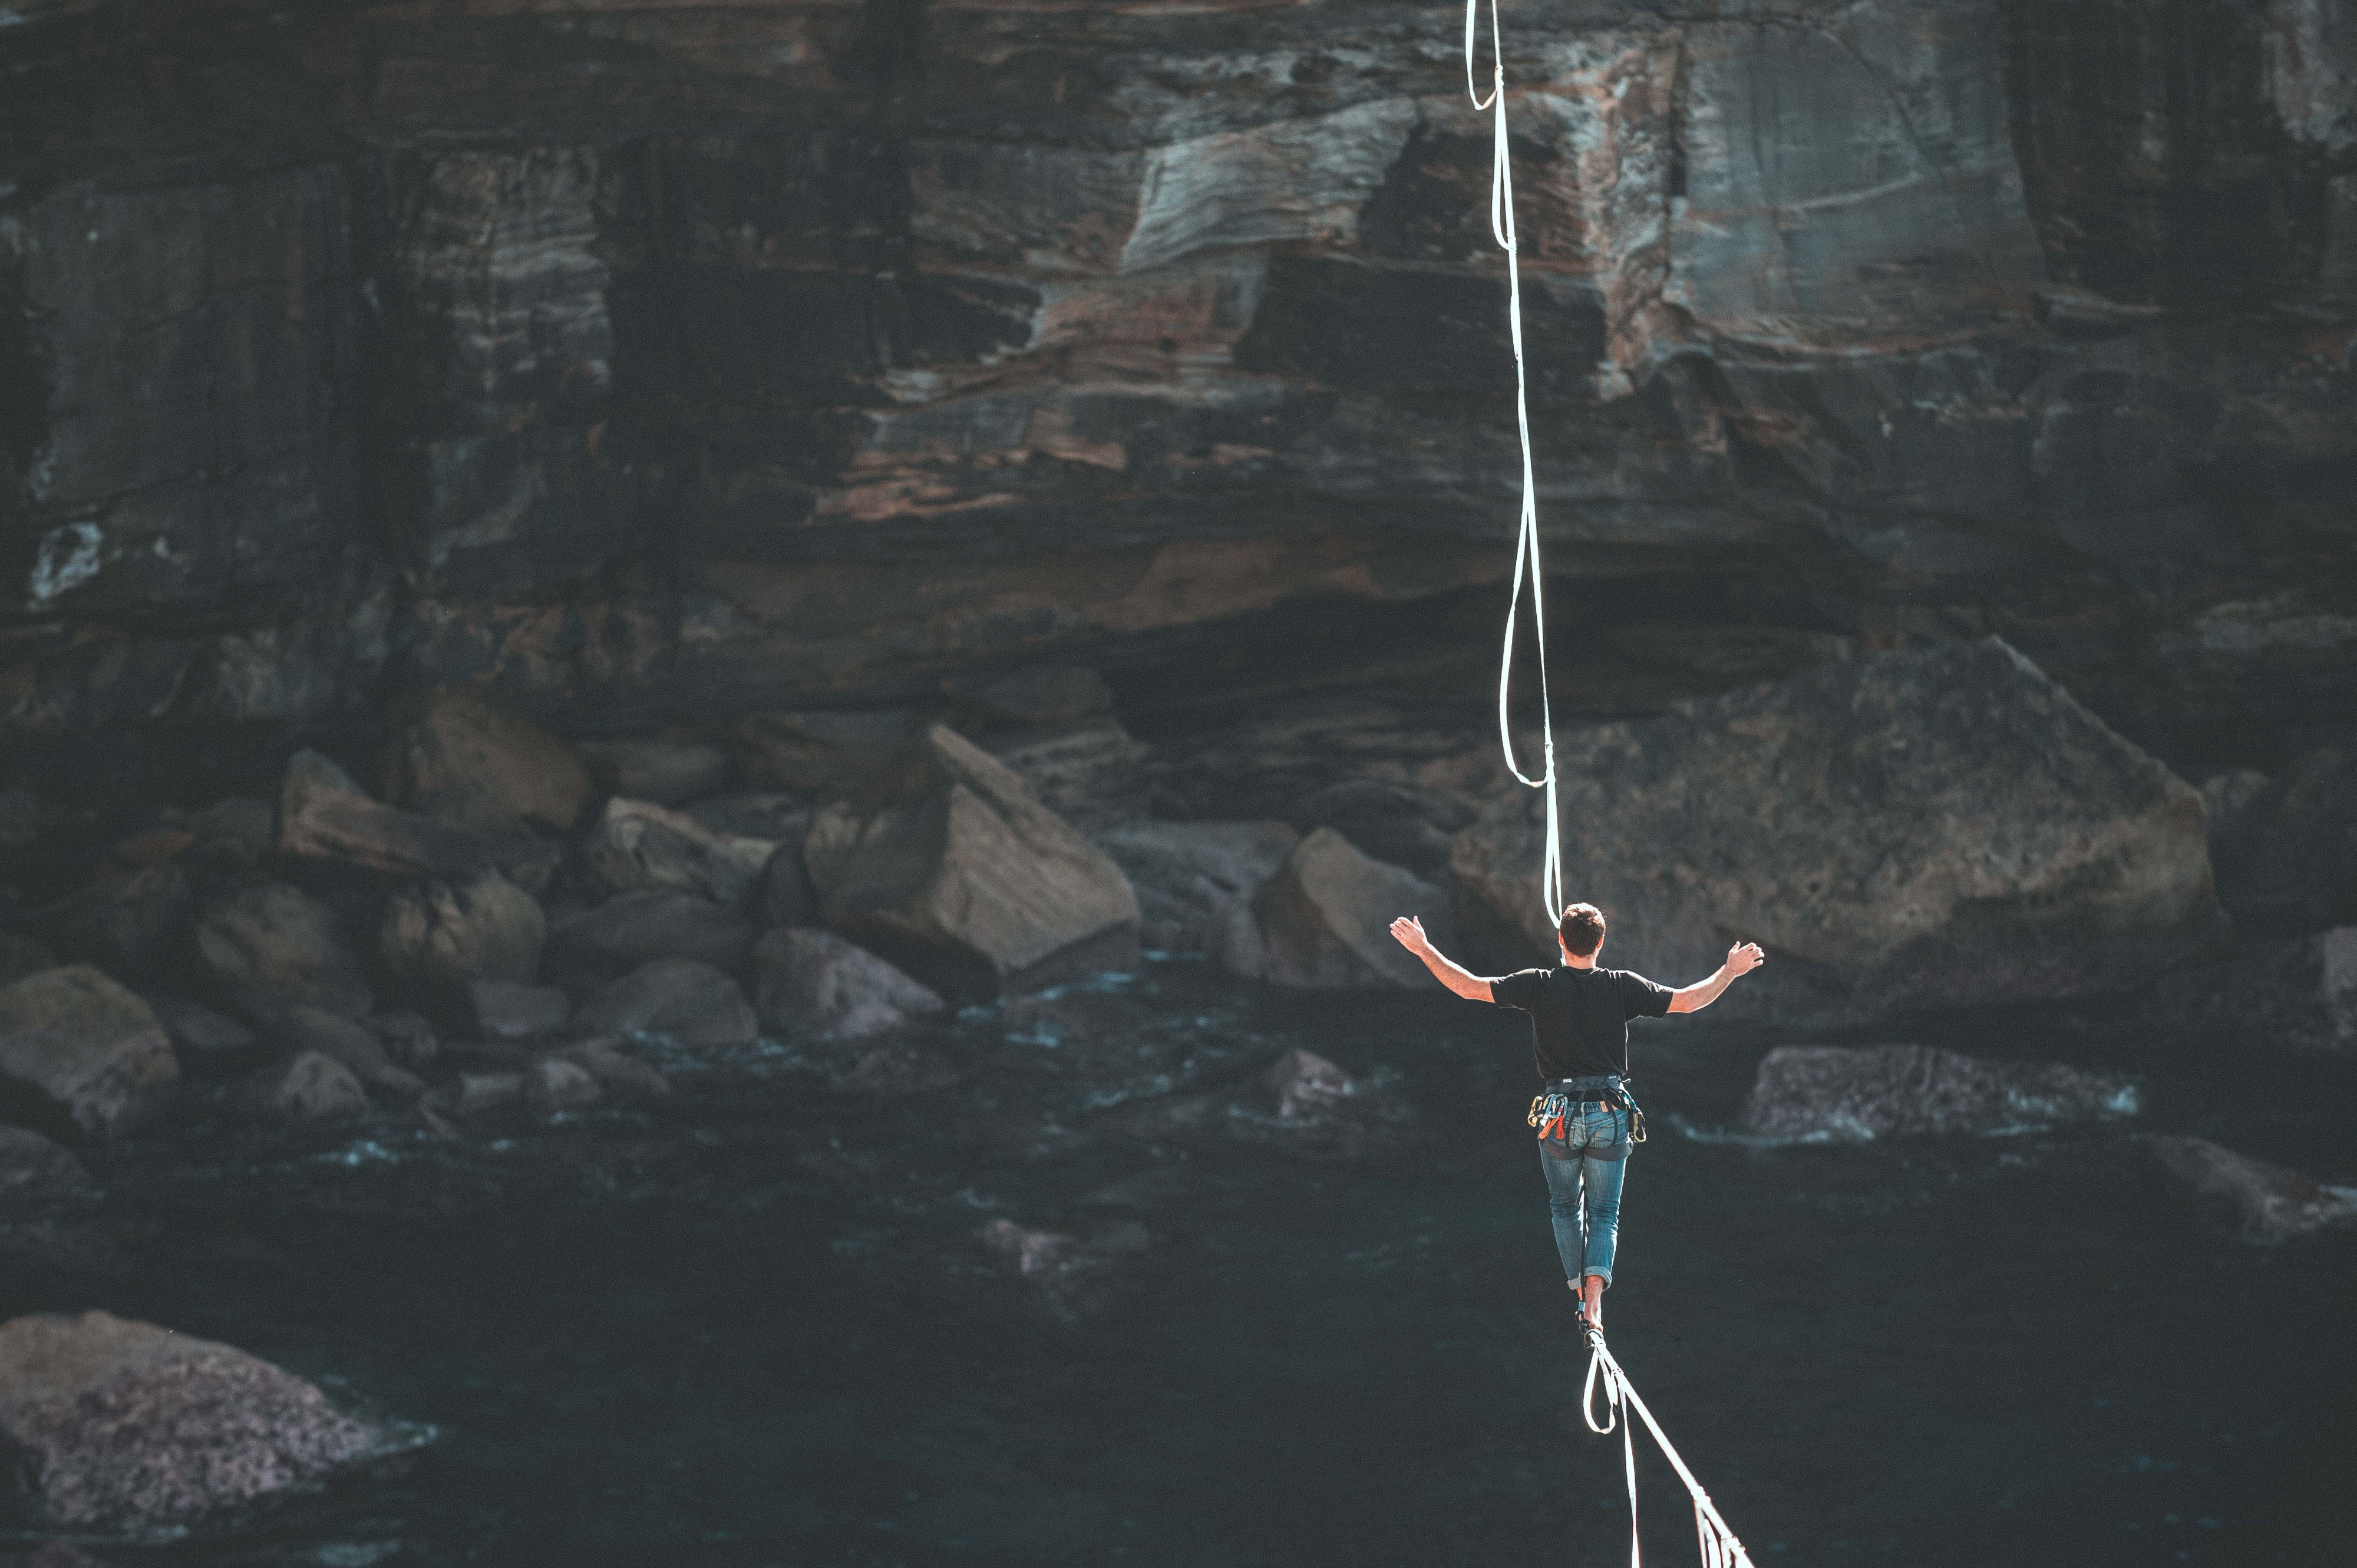 A man walking on a rope at a significant height above water between two mountains